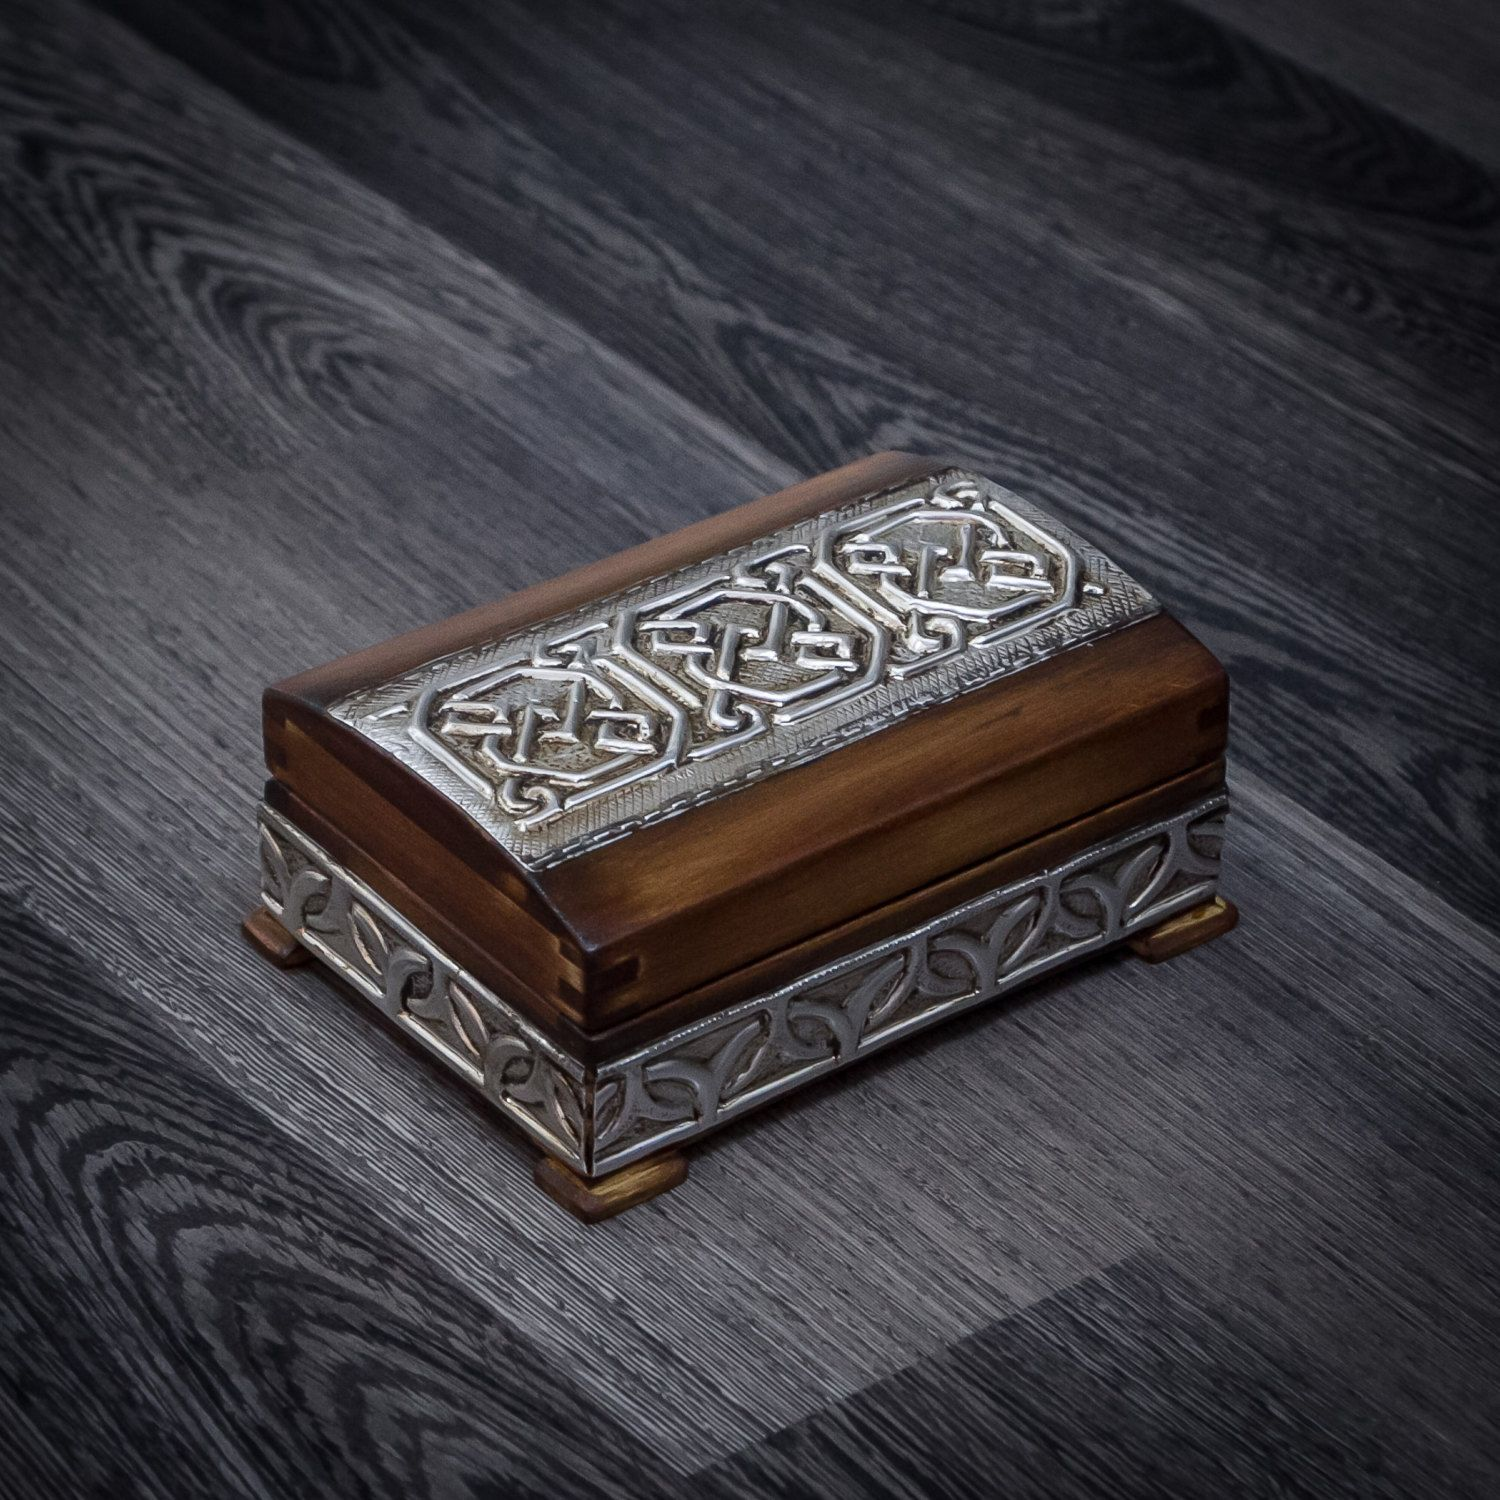 Wooden jewelry box for men and womenCeltic knot boxSmall Treasure